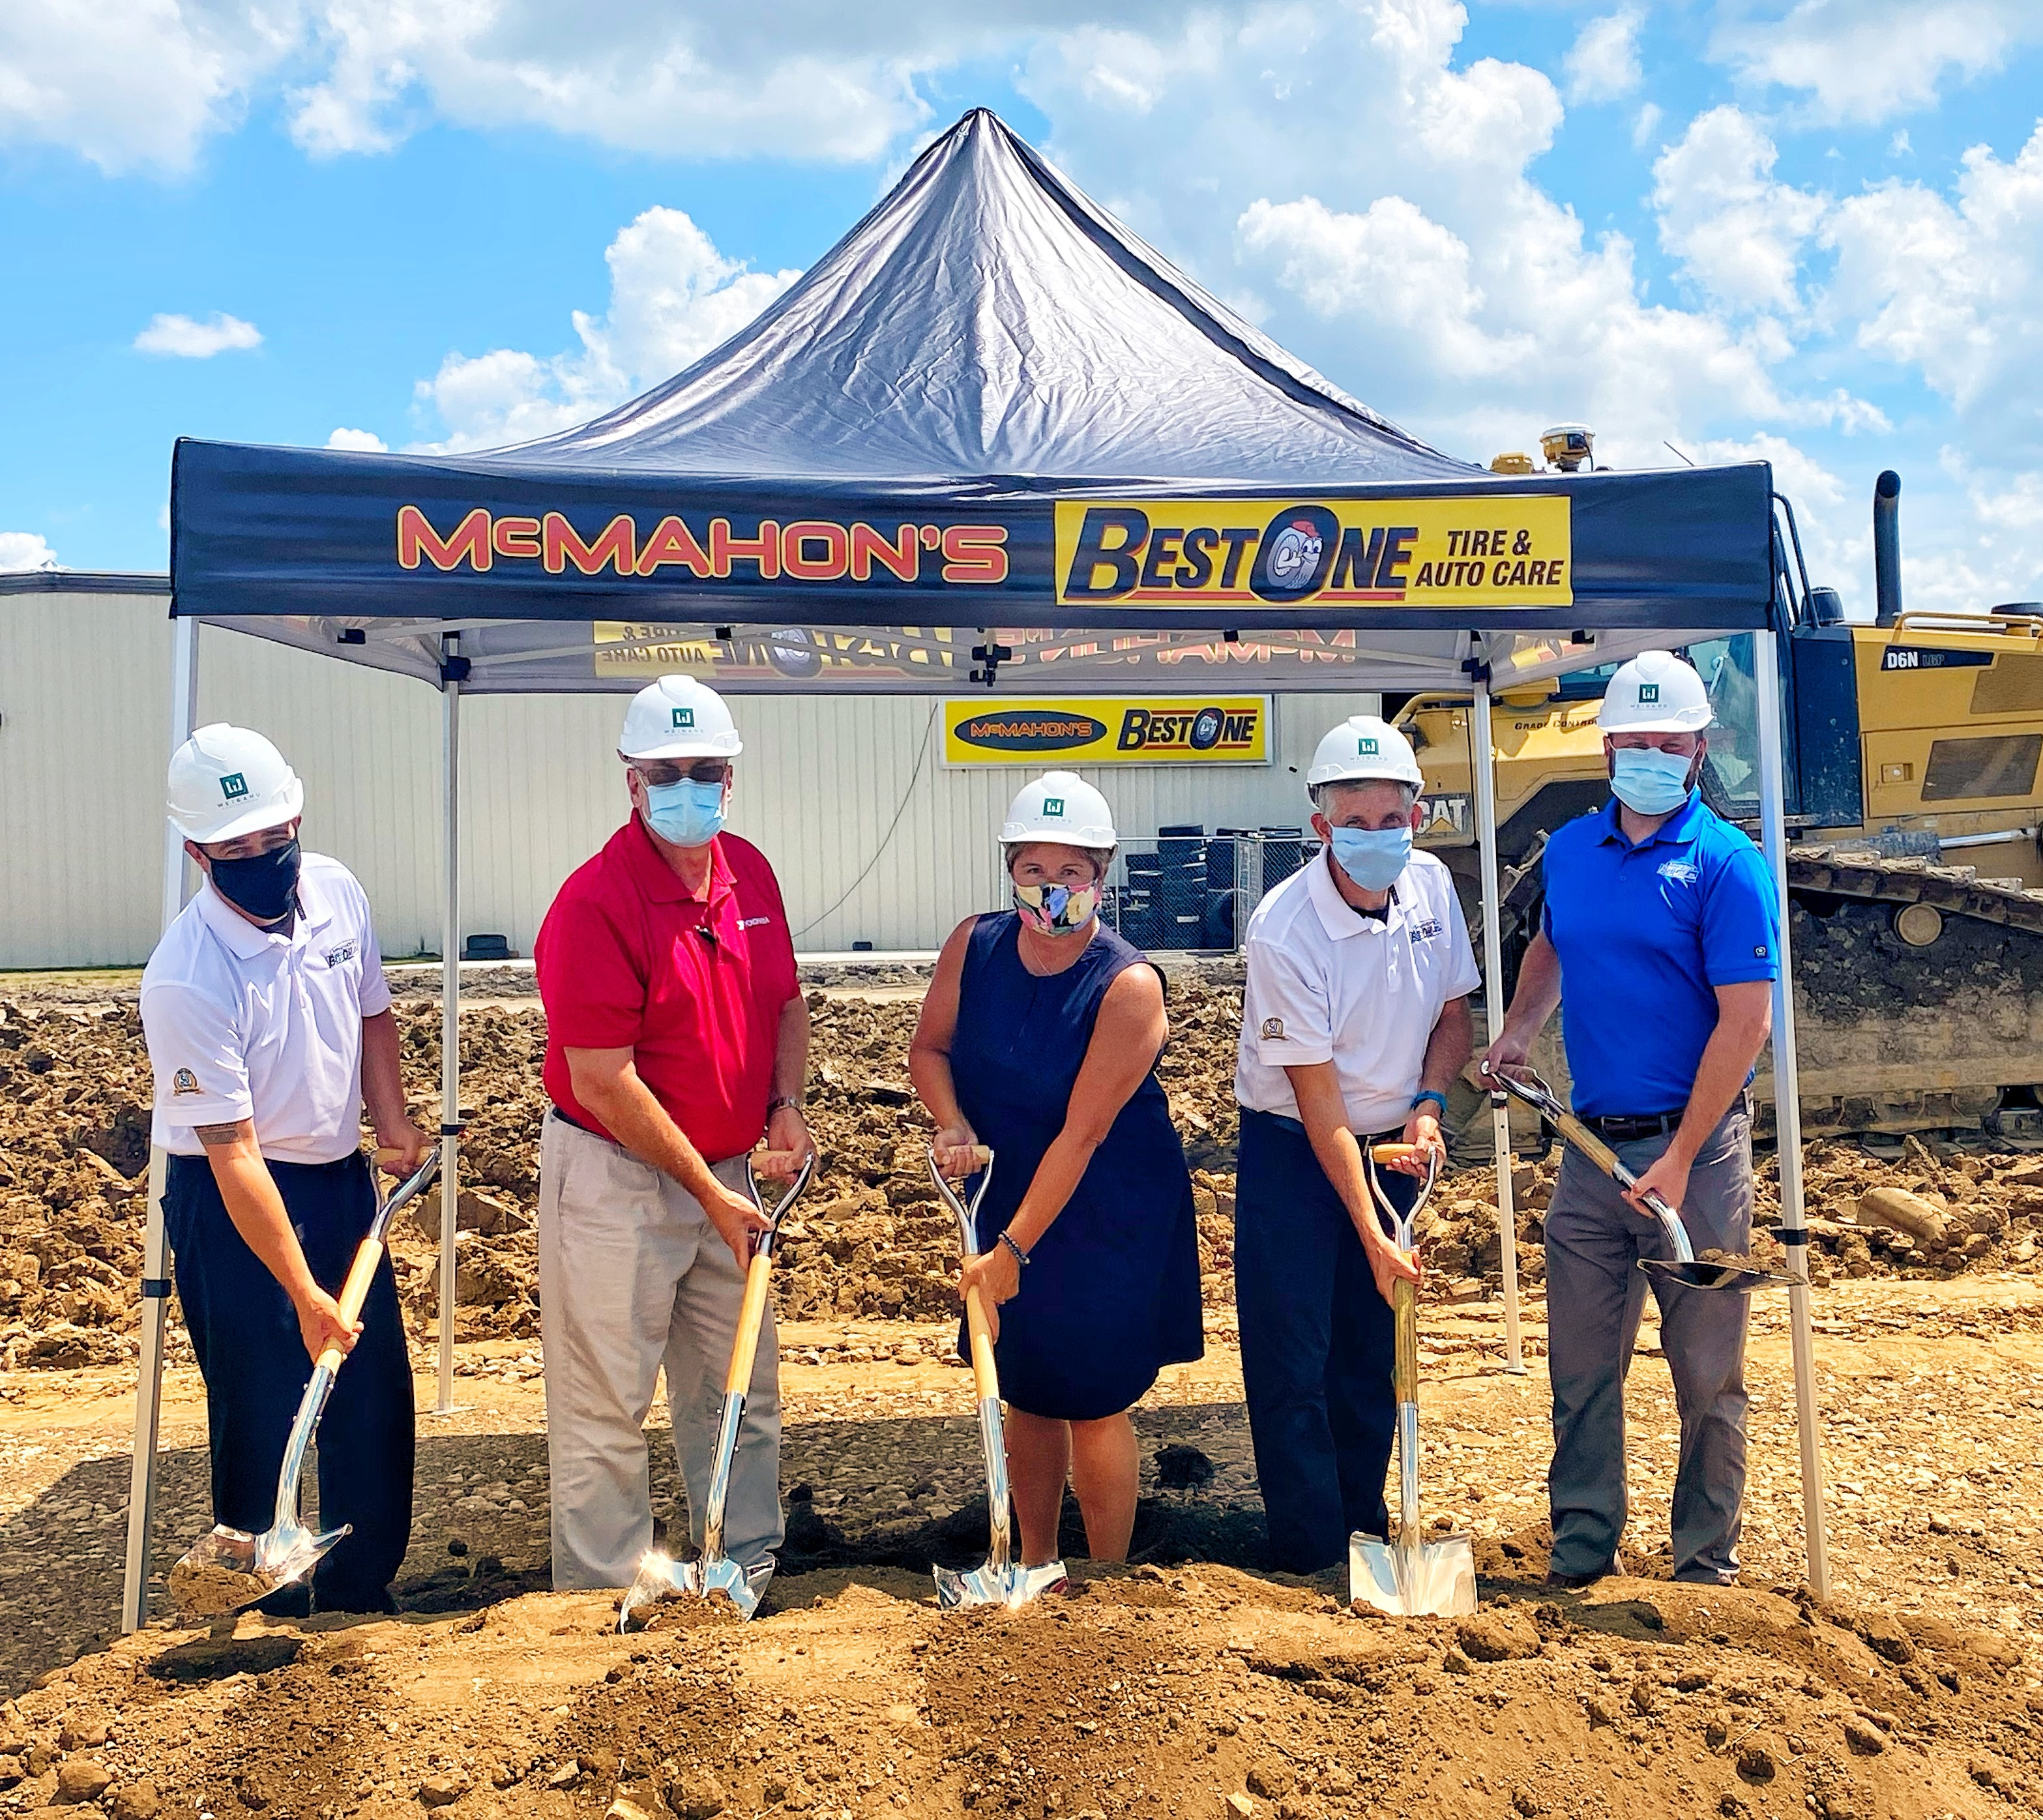 McMahon's Best-One Breaks Ground on New Store